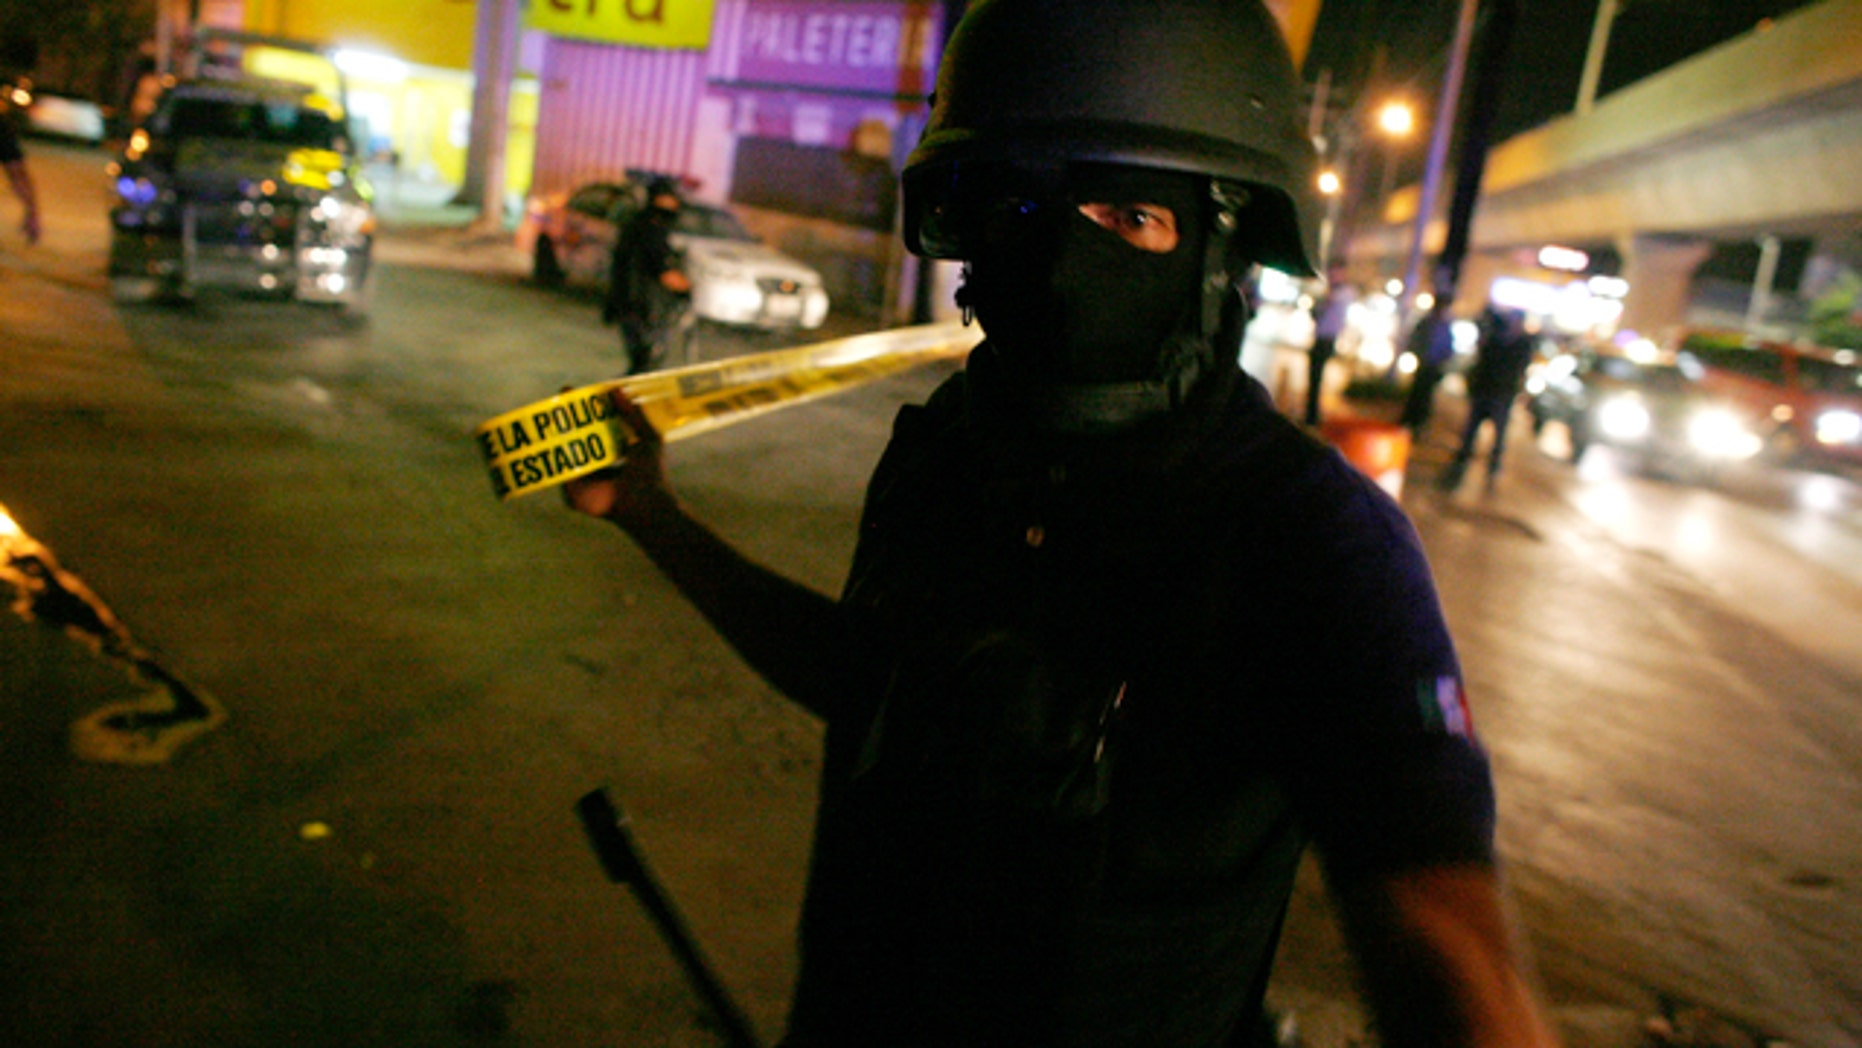 A policeman cordons off a crime scene where gunmen tried to kidnapp a government official outside the Topo Chico prison in Monterrey, June 11, 2010. A rift between drug gangs near the U.S. border is terrifying Mexico's richest city Monterrey, once a poster child of development, forcing a quarter of its export factories to freeze investment. A gruesome war between Mexico's powerful Gulf cartel and its former armed wing, the Zetas, has killed a record 290 people in Monterrey and surrounding areas since the start of the year, when the two groups split and bloodshed escalated. Picture taken June 11, 2010. REUTERS/Tomas Bravo (MEXICO - Tags: CIVIL UNREST CRIME LAW POLITICS SOCIETY)